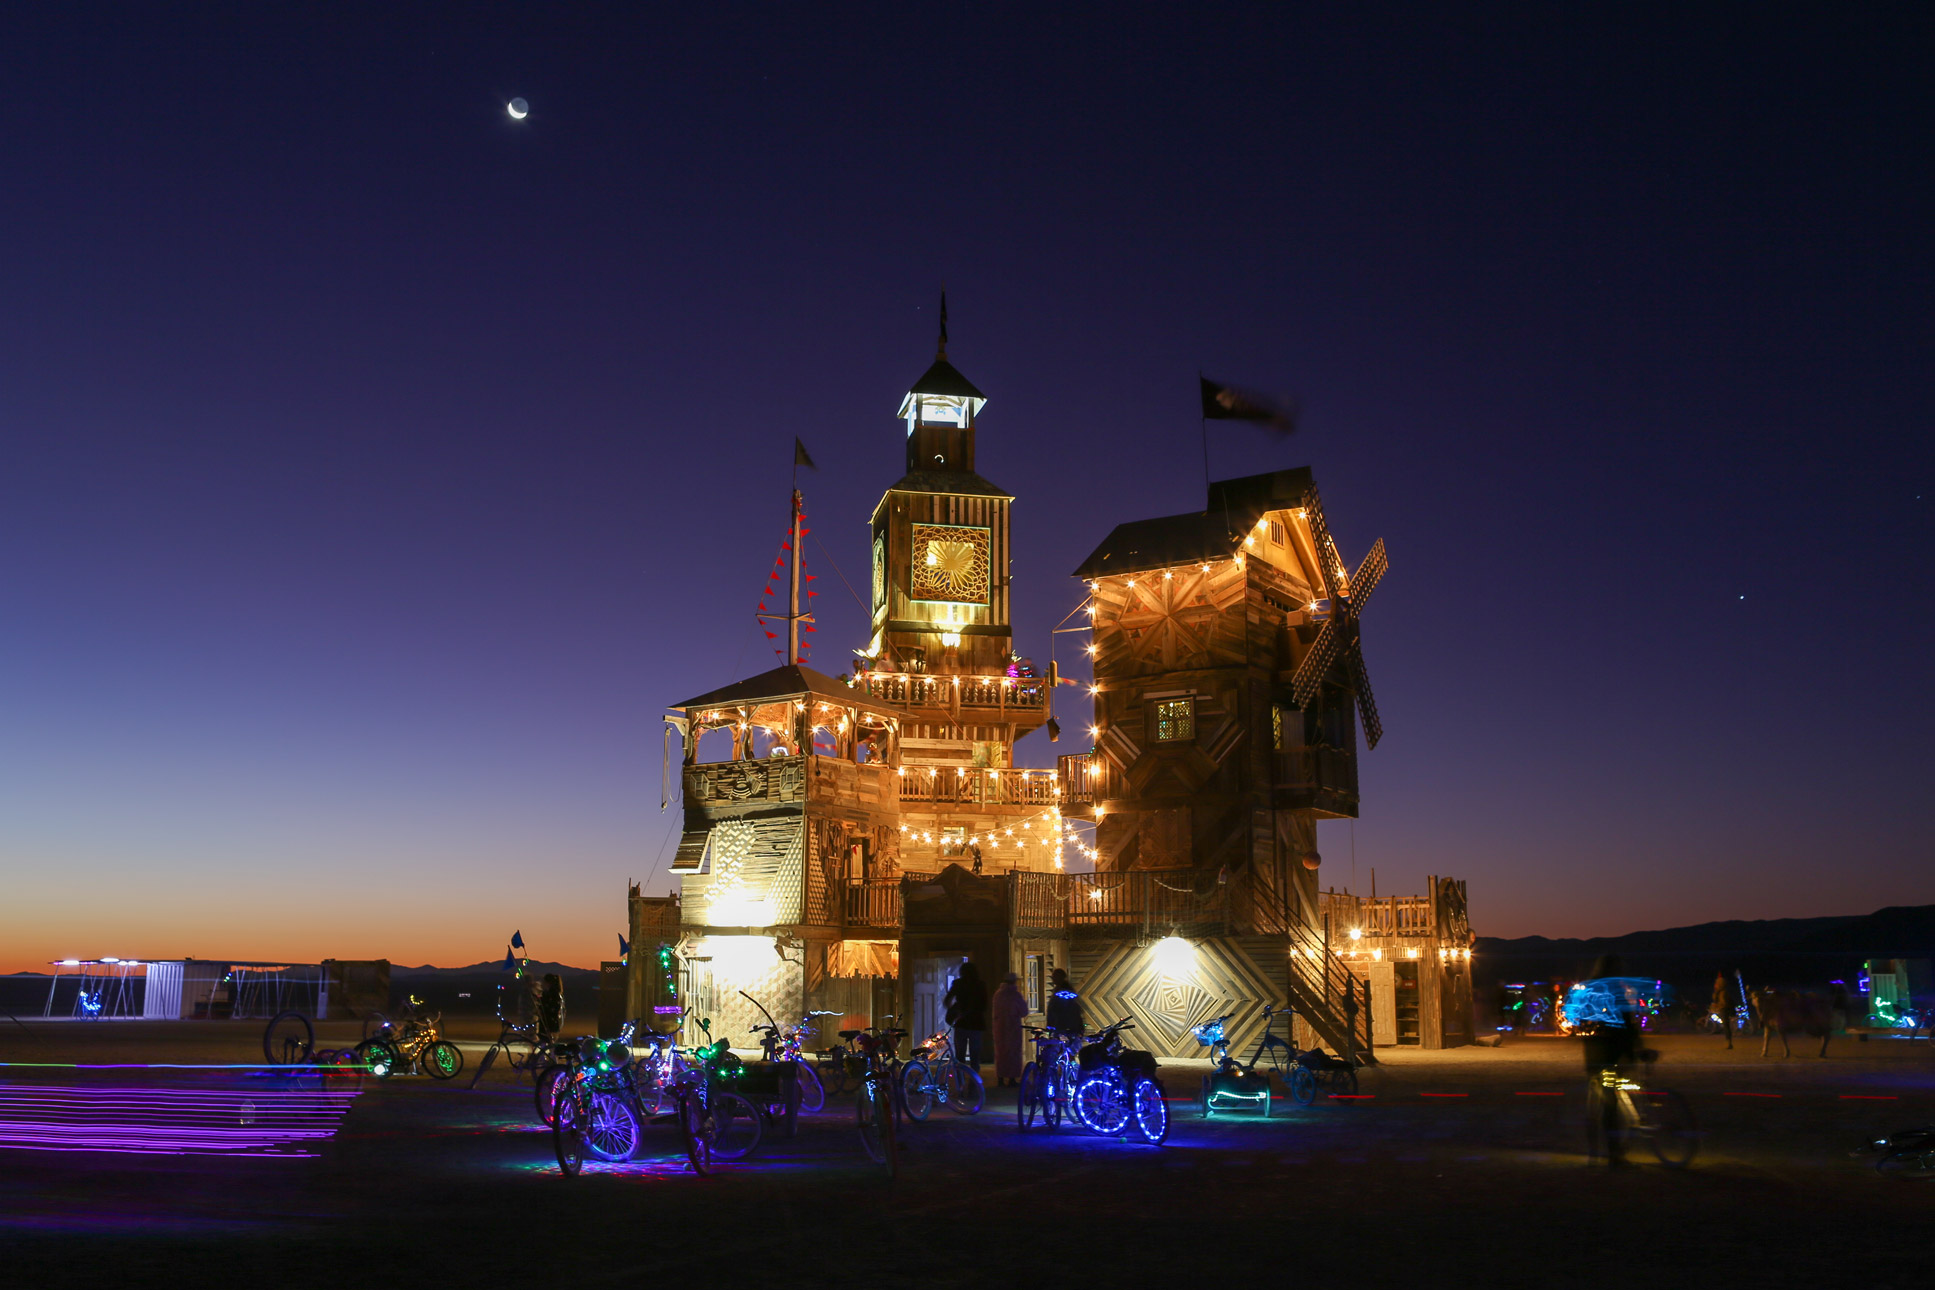 The Folly at Burning Man Sunrise